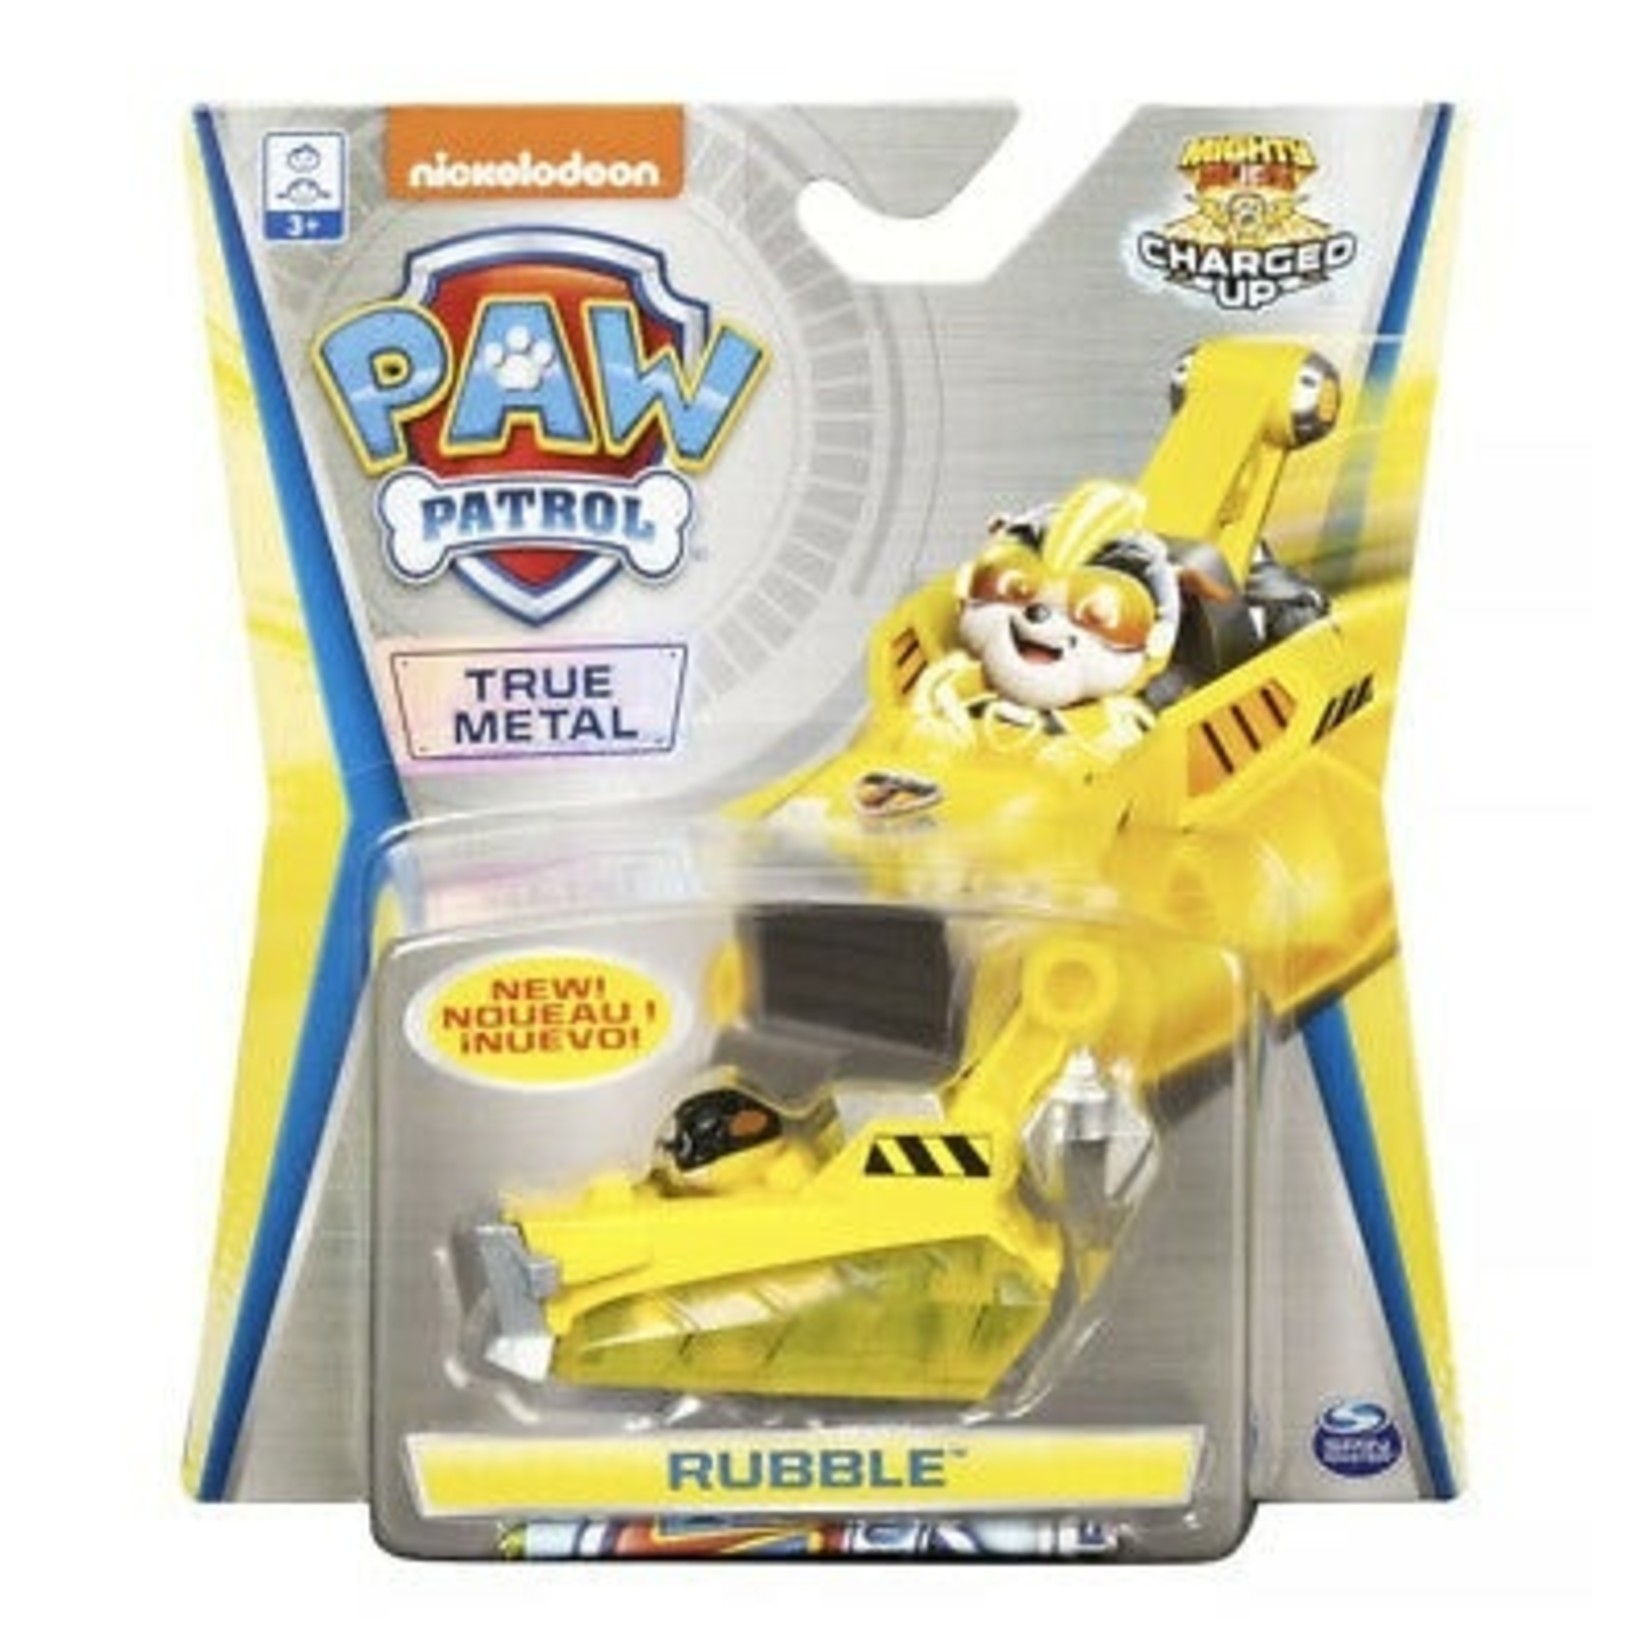 Spin Master Paw Patrol True Metal Charged Up Rubble